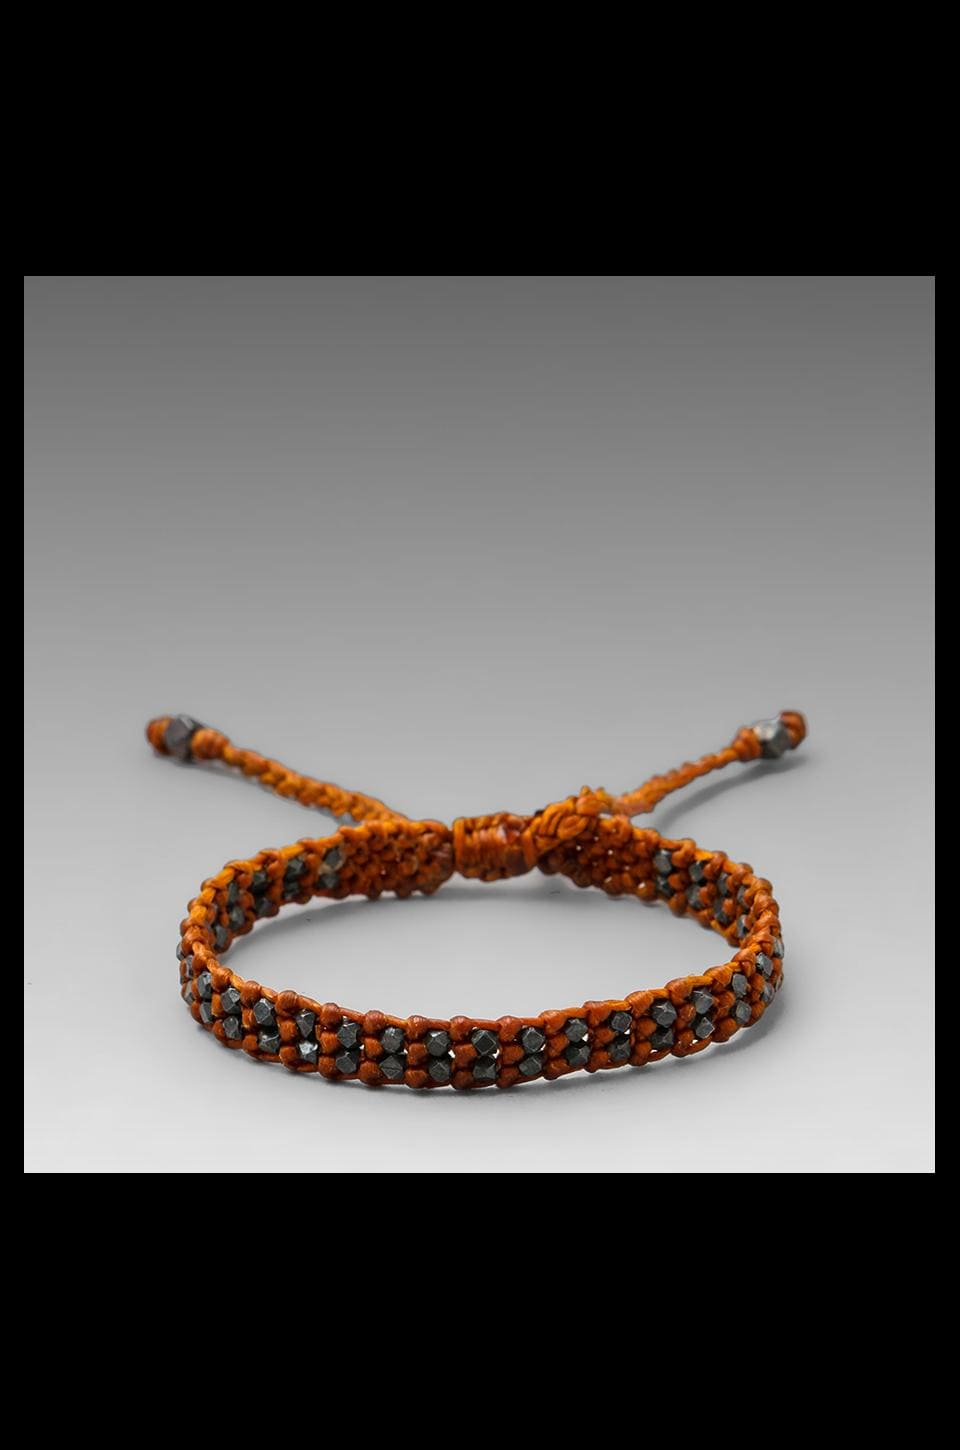 M.Cohen Oxidized Bead Bracelet in Rust